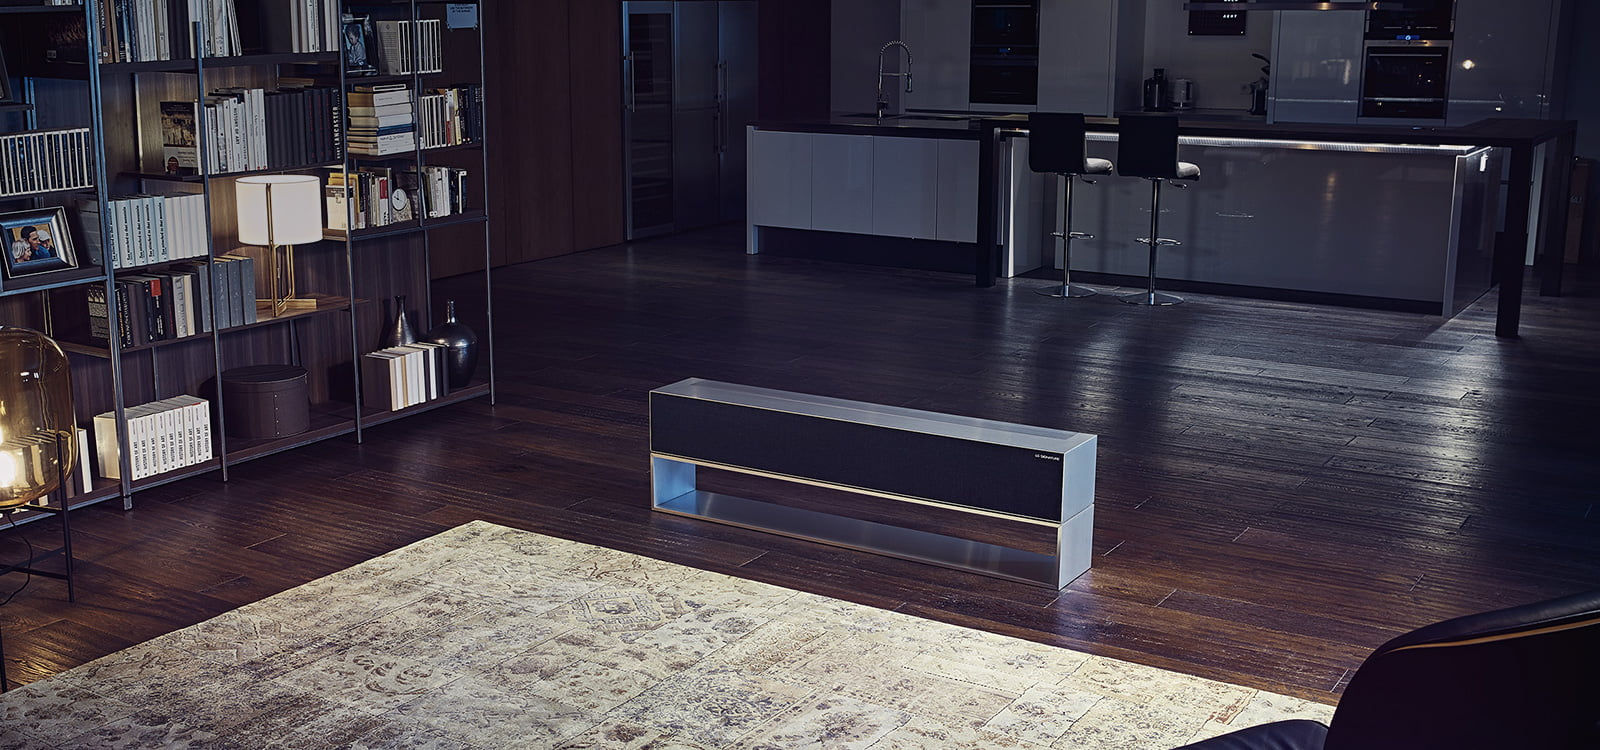 LG rollable TV base